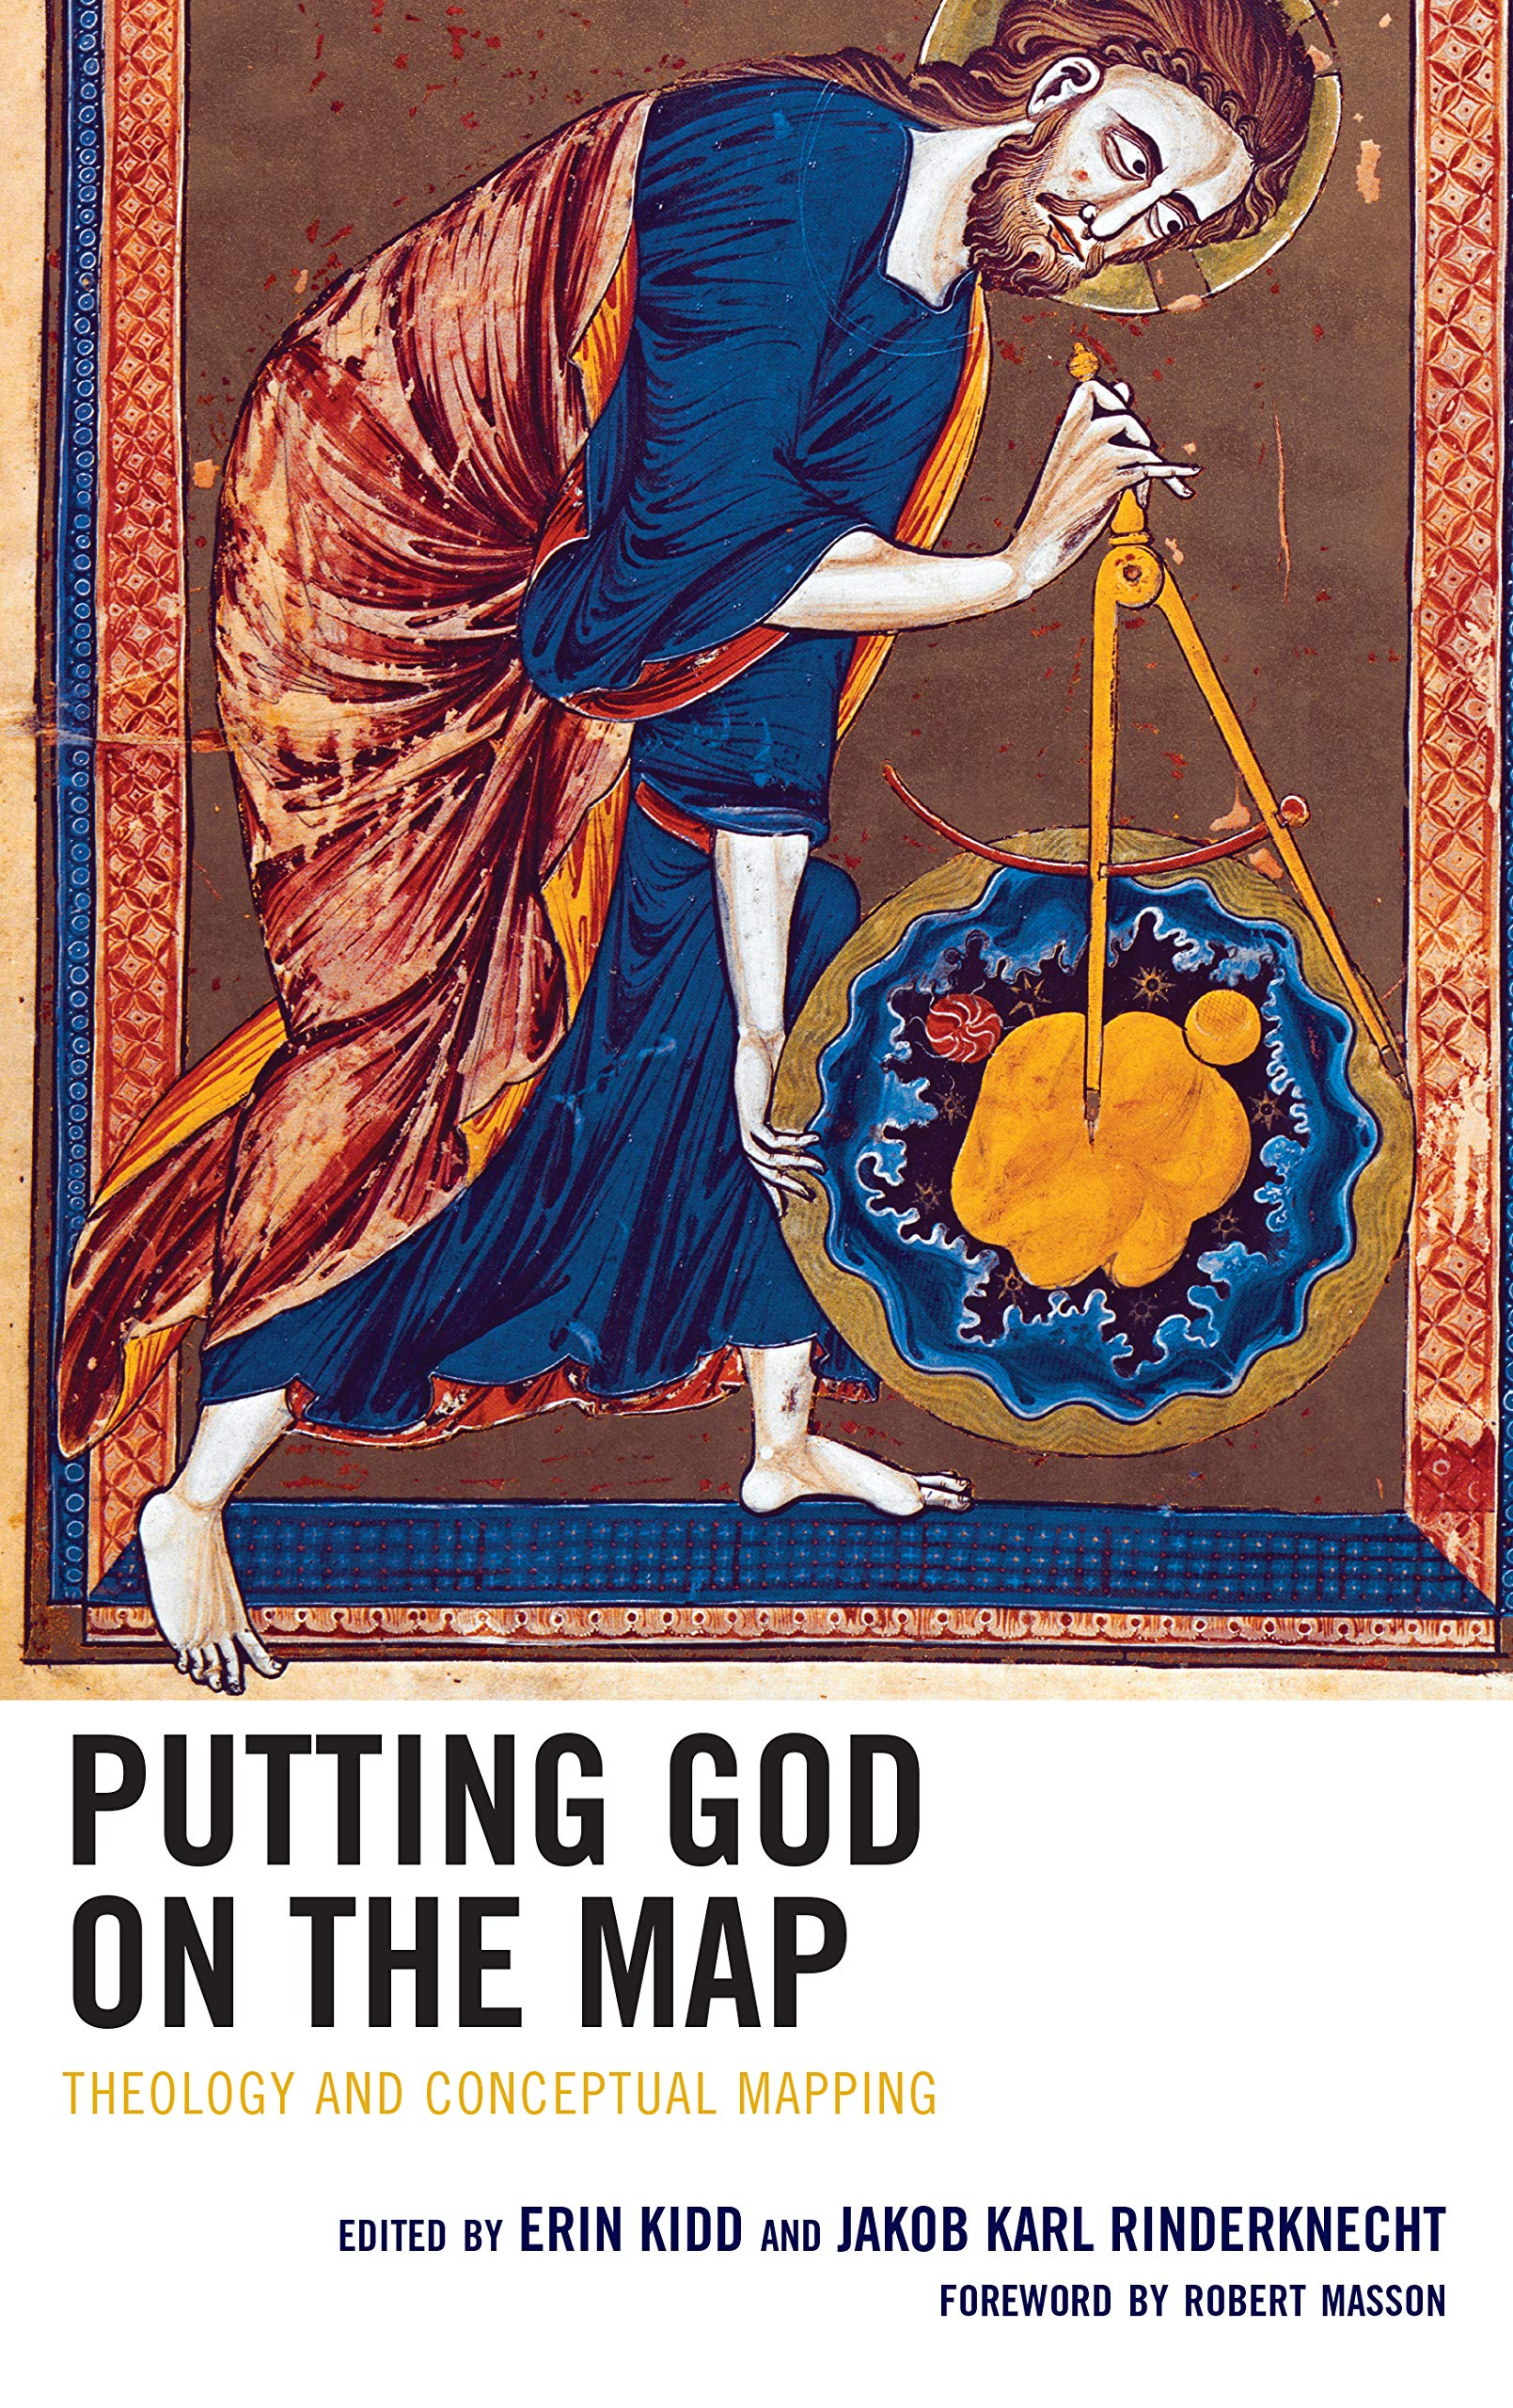 Putting God on the Map: Theology and Conceptual Mapping